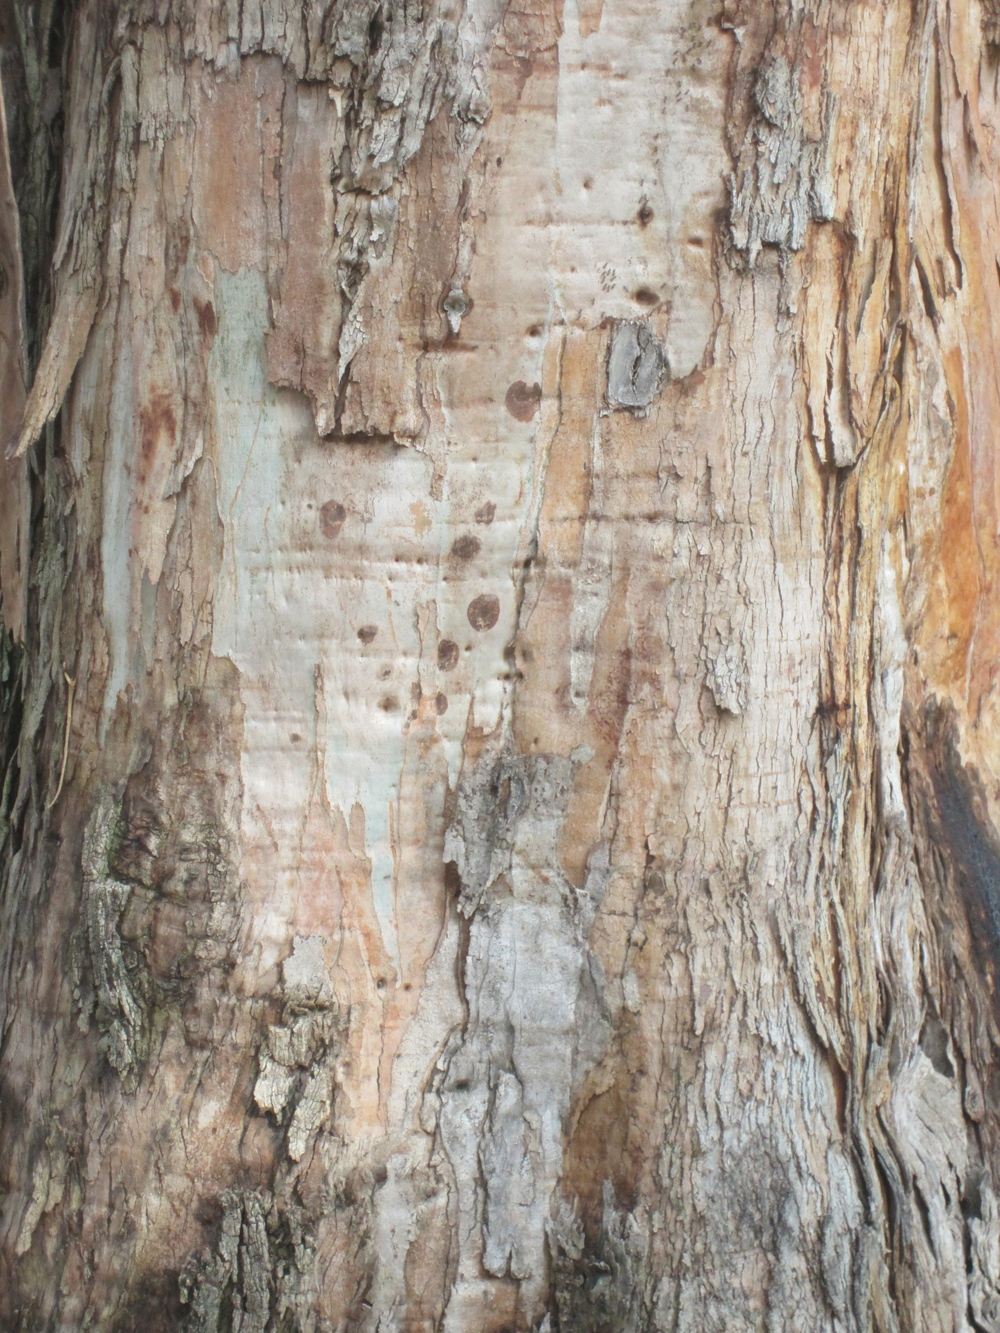 This is one of my photographs taken of a tree's surface that I extract texture samples from and use repeatedly. As I develop it, I paint into the forms giving more precise detail and color